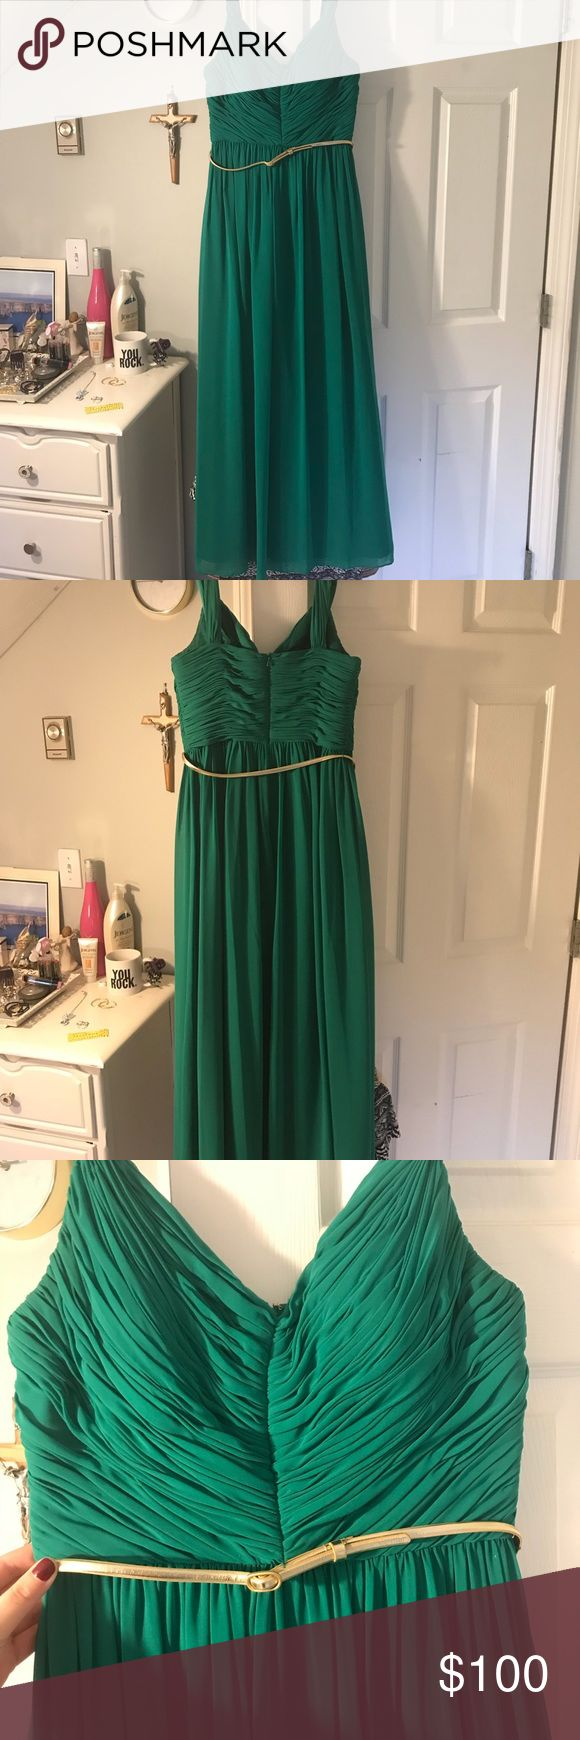 Kelly Green Prom Dress! Beautiful Kelly Green Prom Dress, feel like an elegant queen for your night out! Only worn once! Perfect condition! Dresses Prom